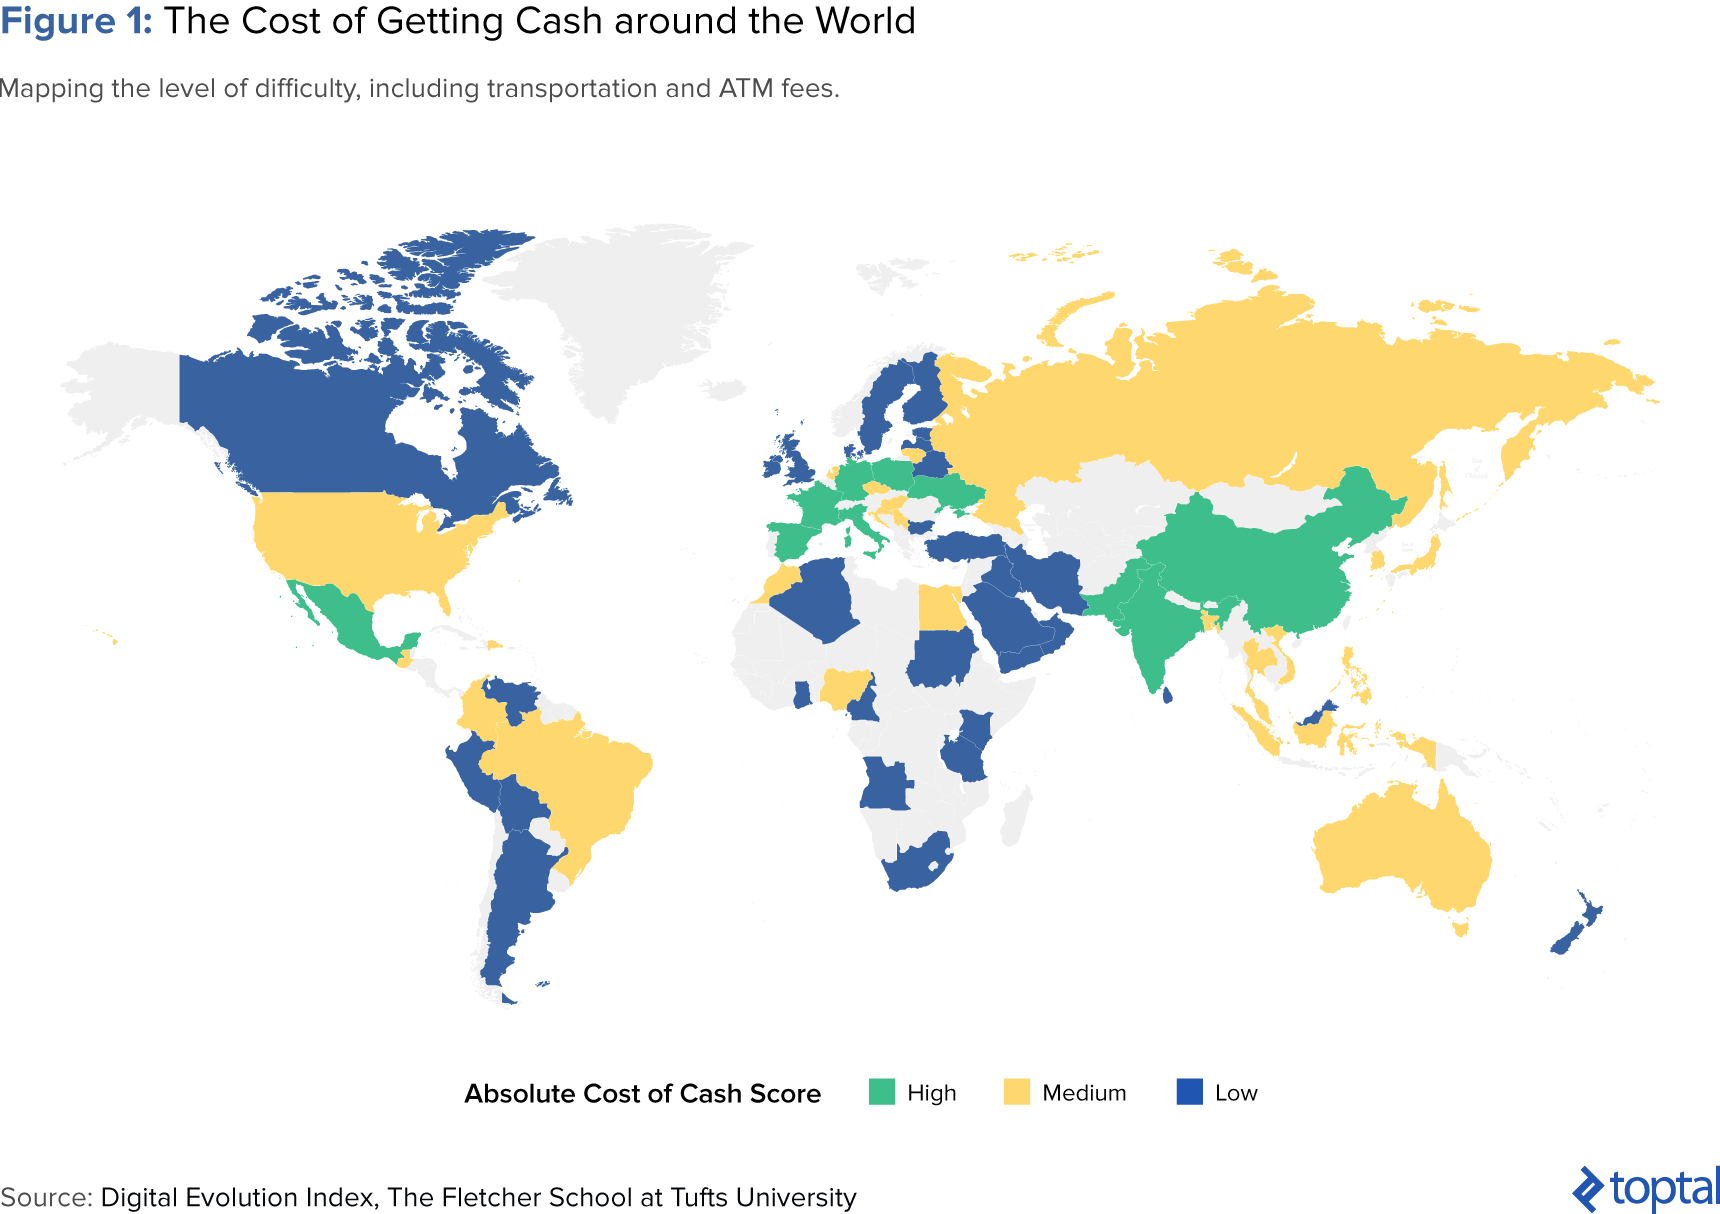 The Cost of Getting Cash around the World